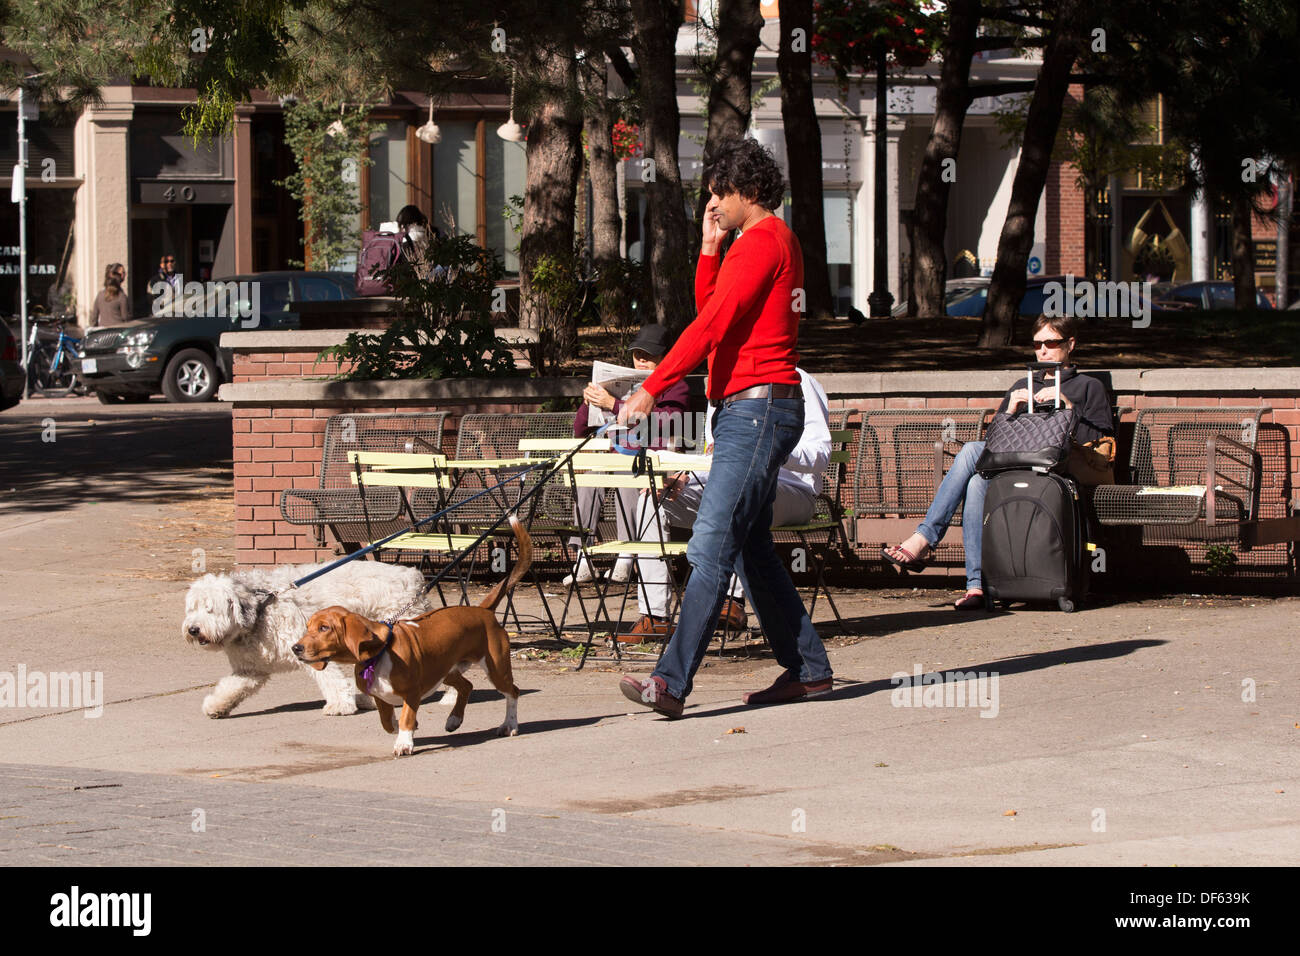 man-walking-3-dogs-while-talking-on-cell